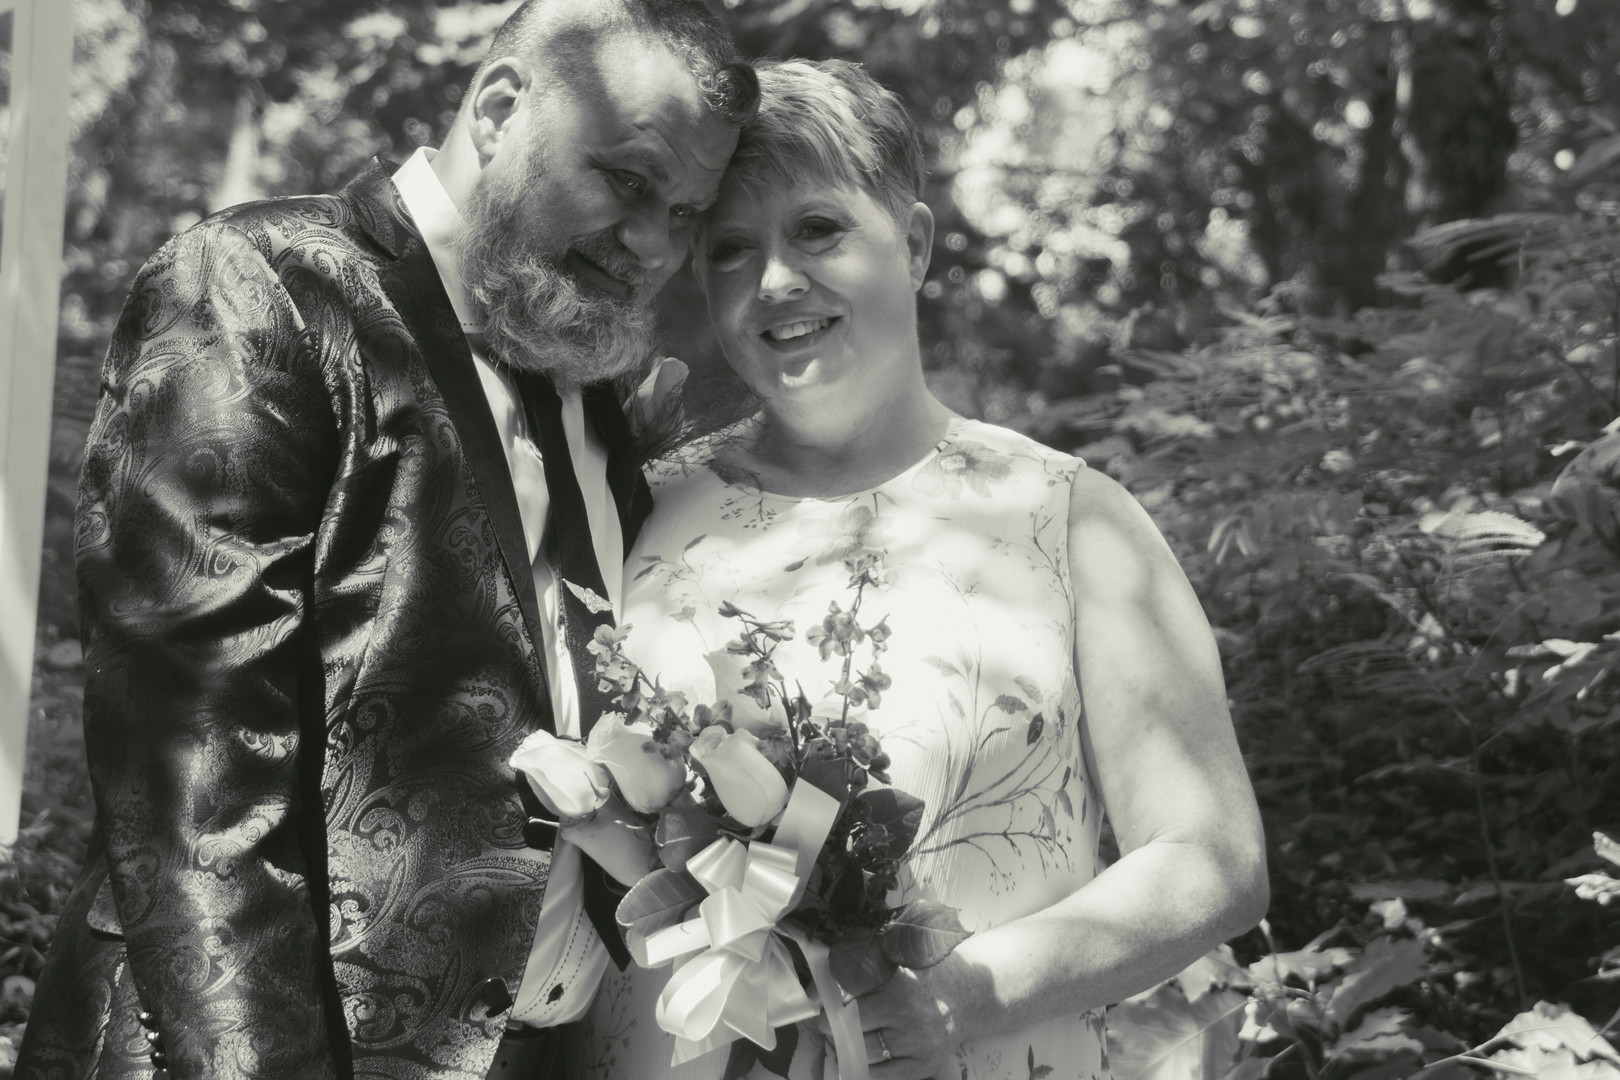 Eleanor and Ronald Wedding at Nolichucke